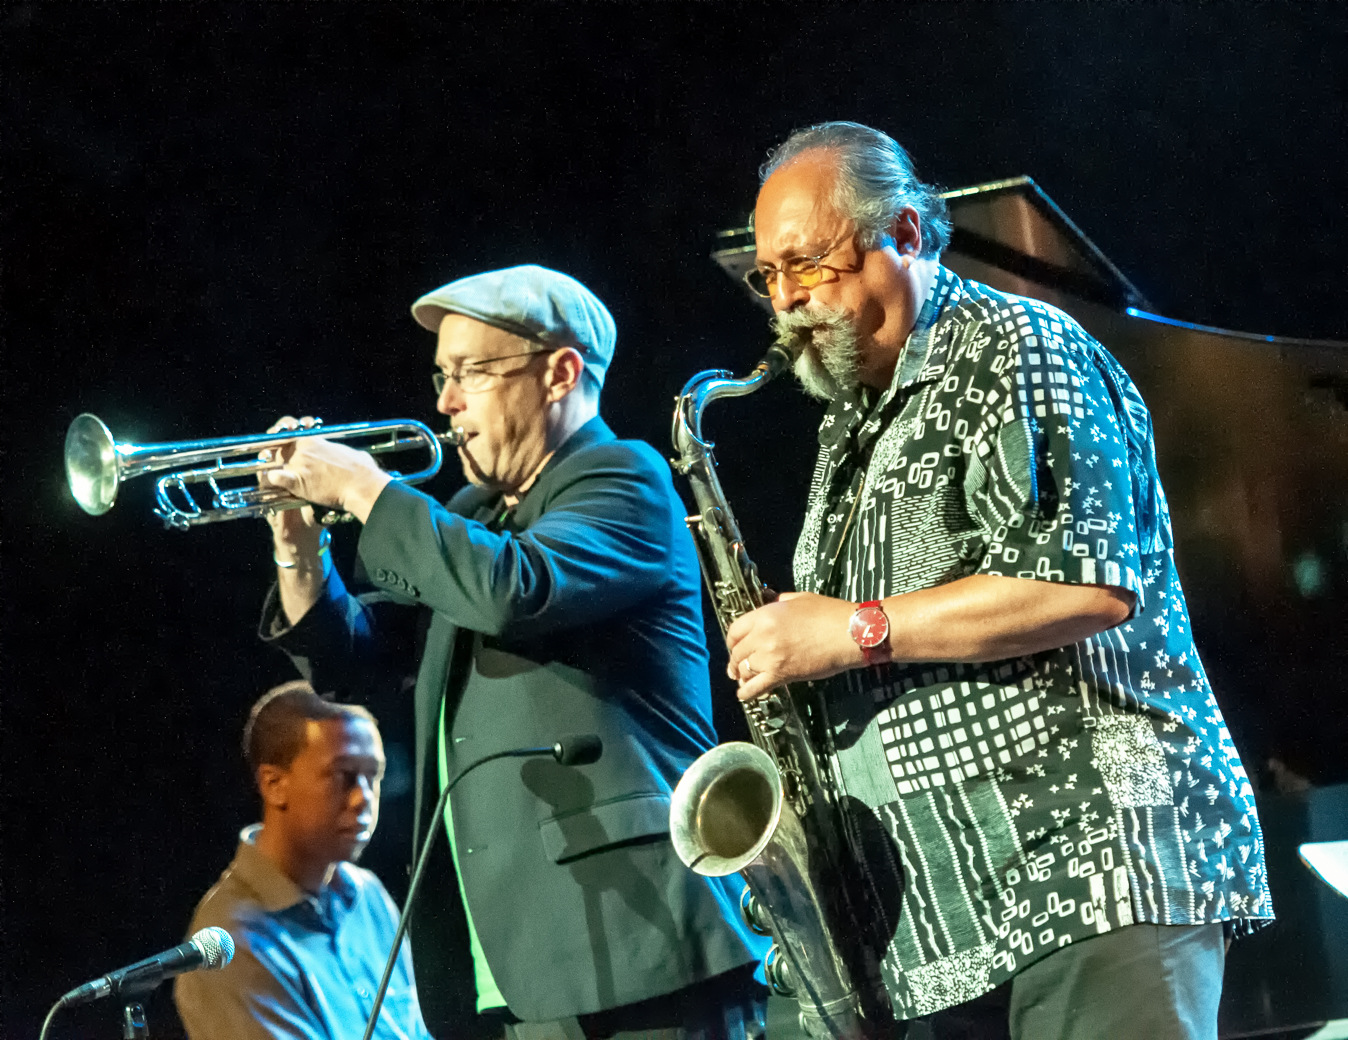 Dave douglas and joe lovano with sound prints at the montreal international jazz festival 2013